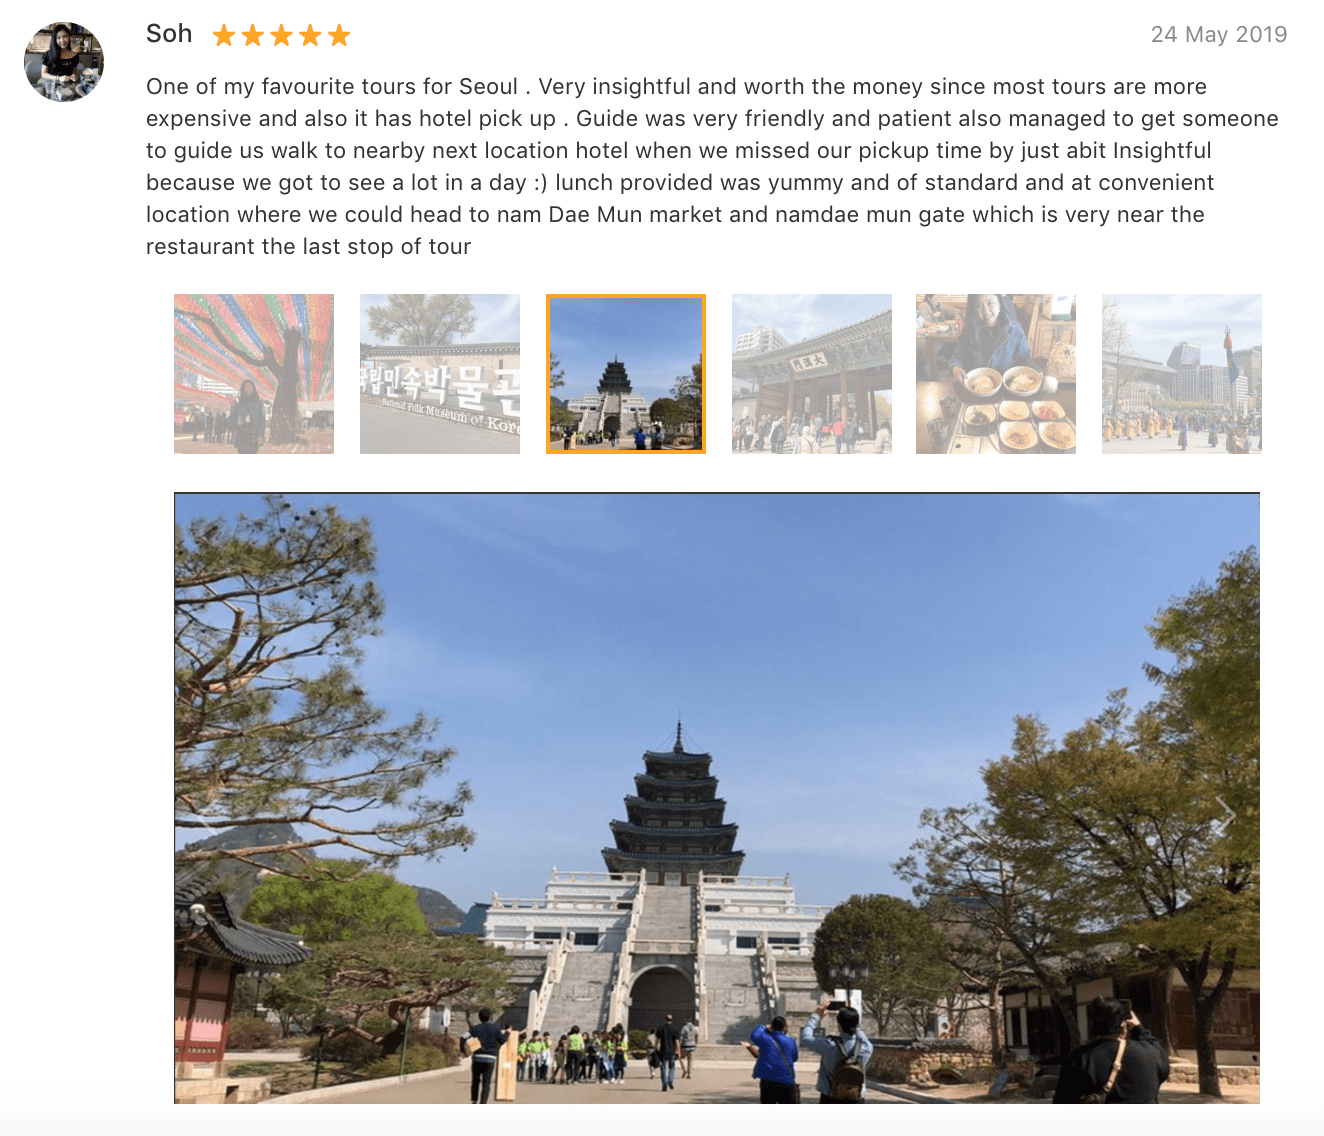 'One of my favourite tours for Seoul. Very insightful and worth the money since most tours are more expensive and also it has hotel pick up. Guide was very friendly and patient… lunch provided was yummy and of standard and at convenient location…' - Seoul Palaces, Markets, and Temples tour review: Klook